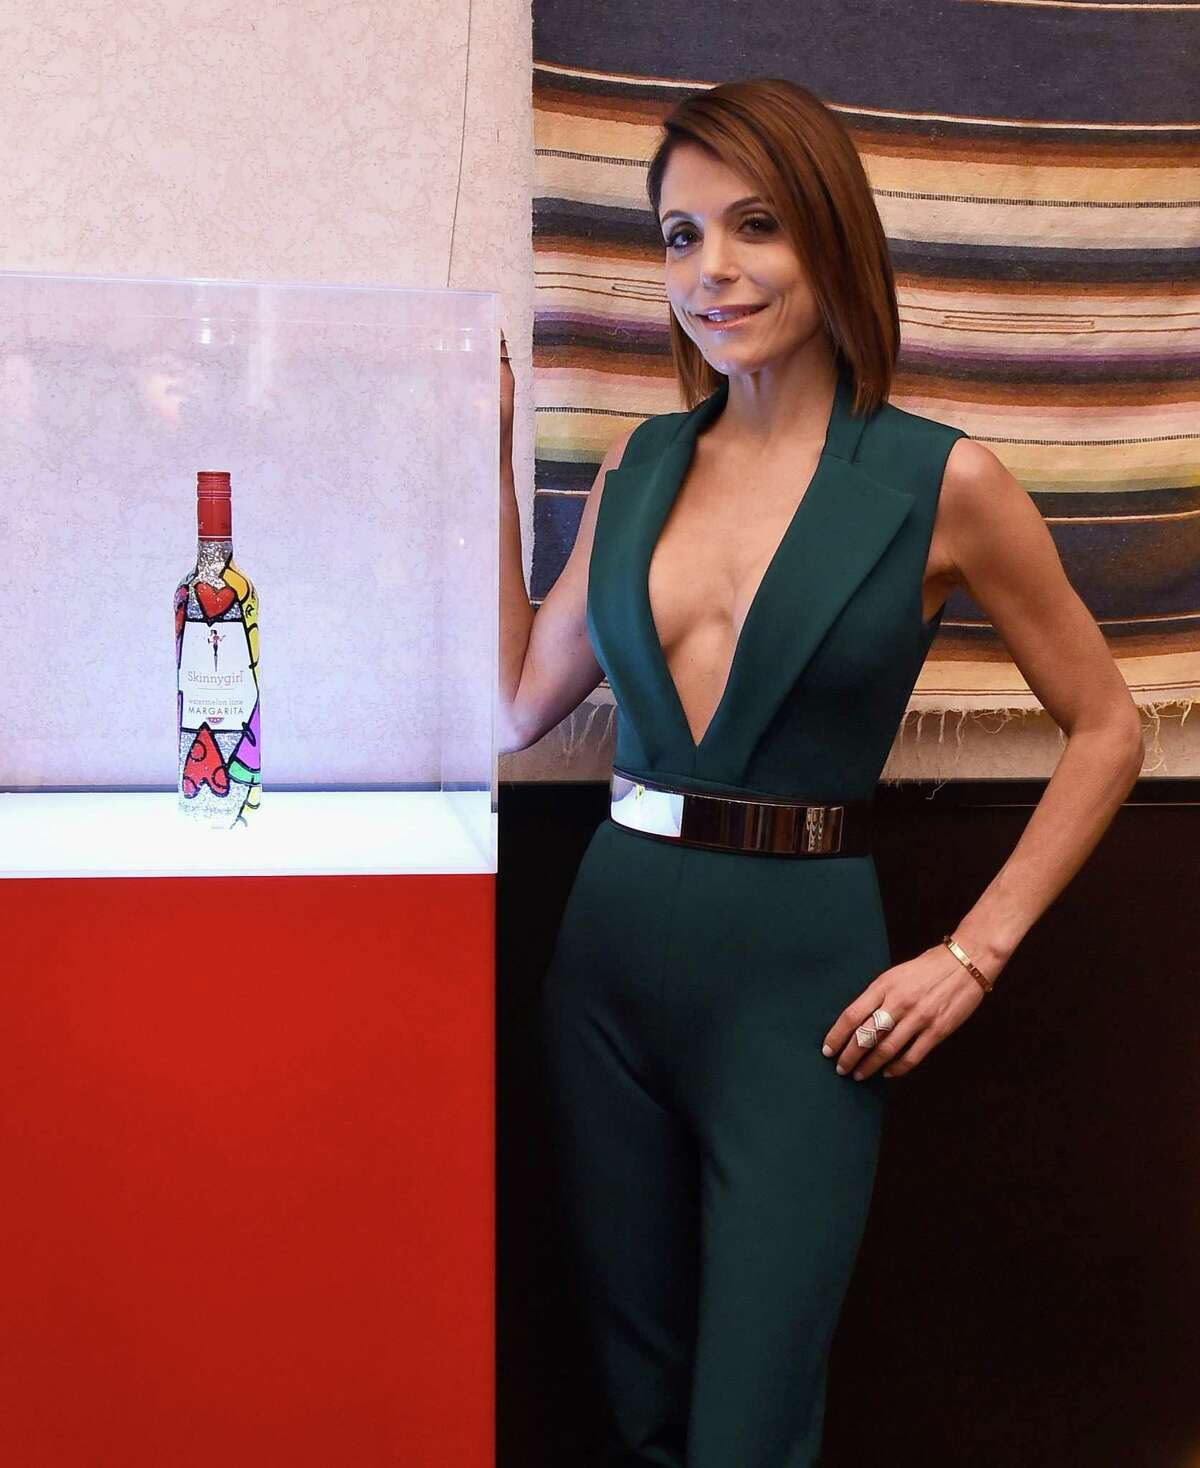 Bethenny Frankel attends a Mexican Fiesta where she shares a sneak peek of the newest addition to Skinnygirl Cocktails' line of more than 20 offerings. To commemorate the launch, close friend and world-renowned pop artist Romero Britto presents her with a personally designed, one-of-kind bottle at Astor Place on March 3, 2016 in New York City.